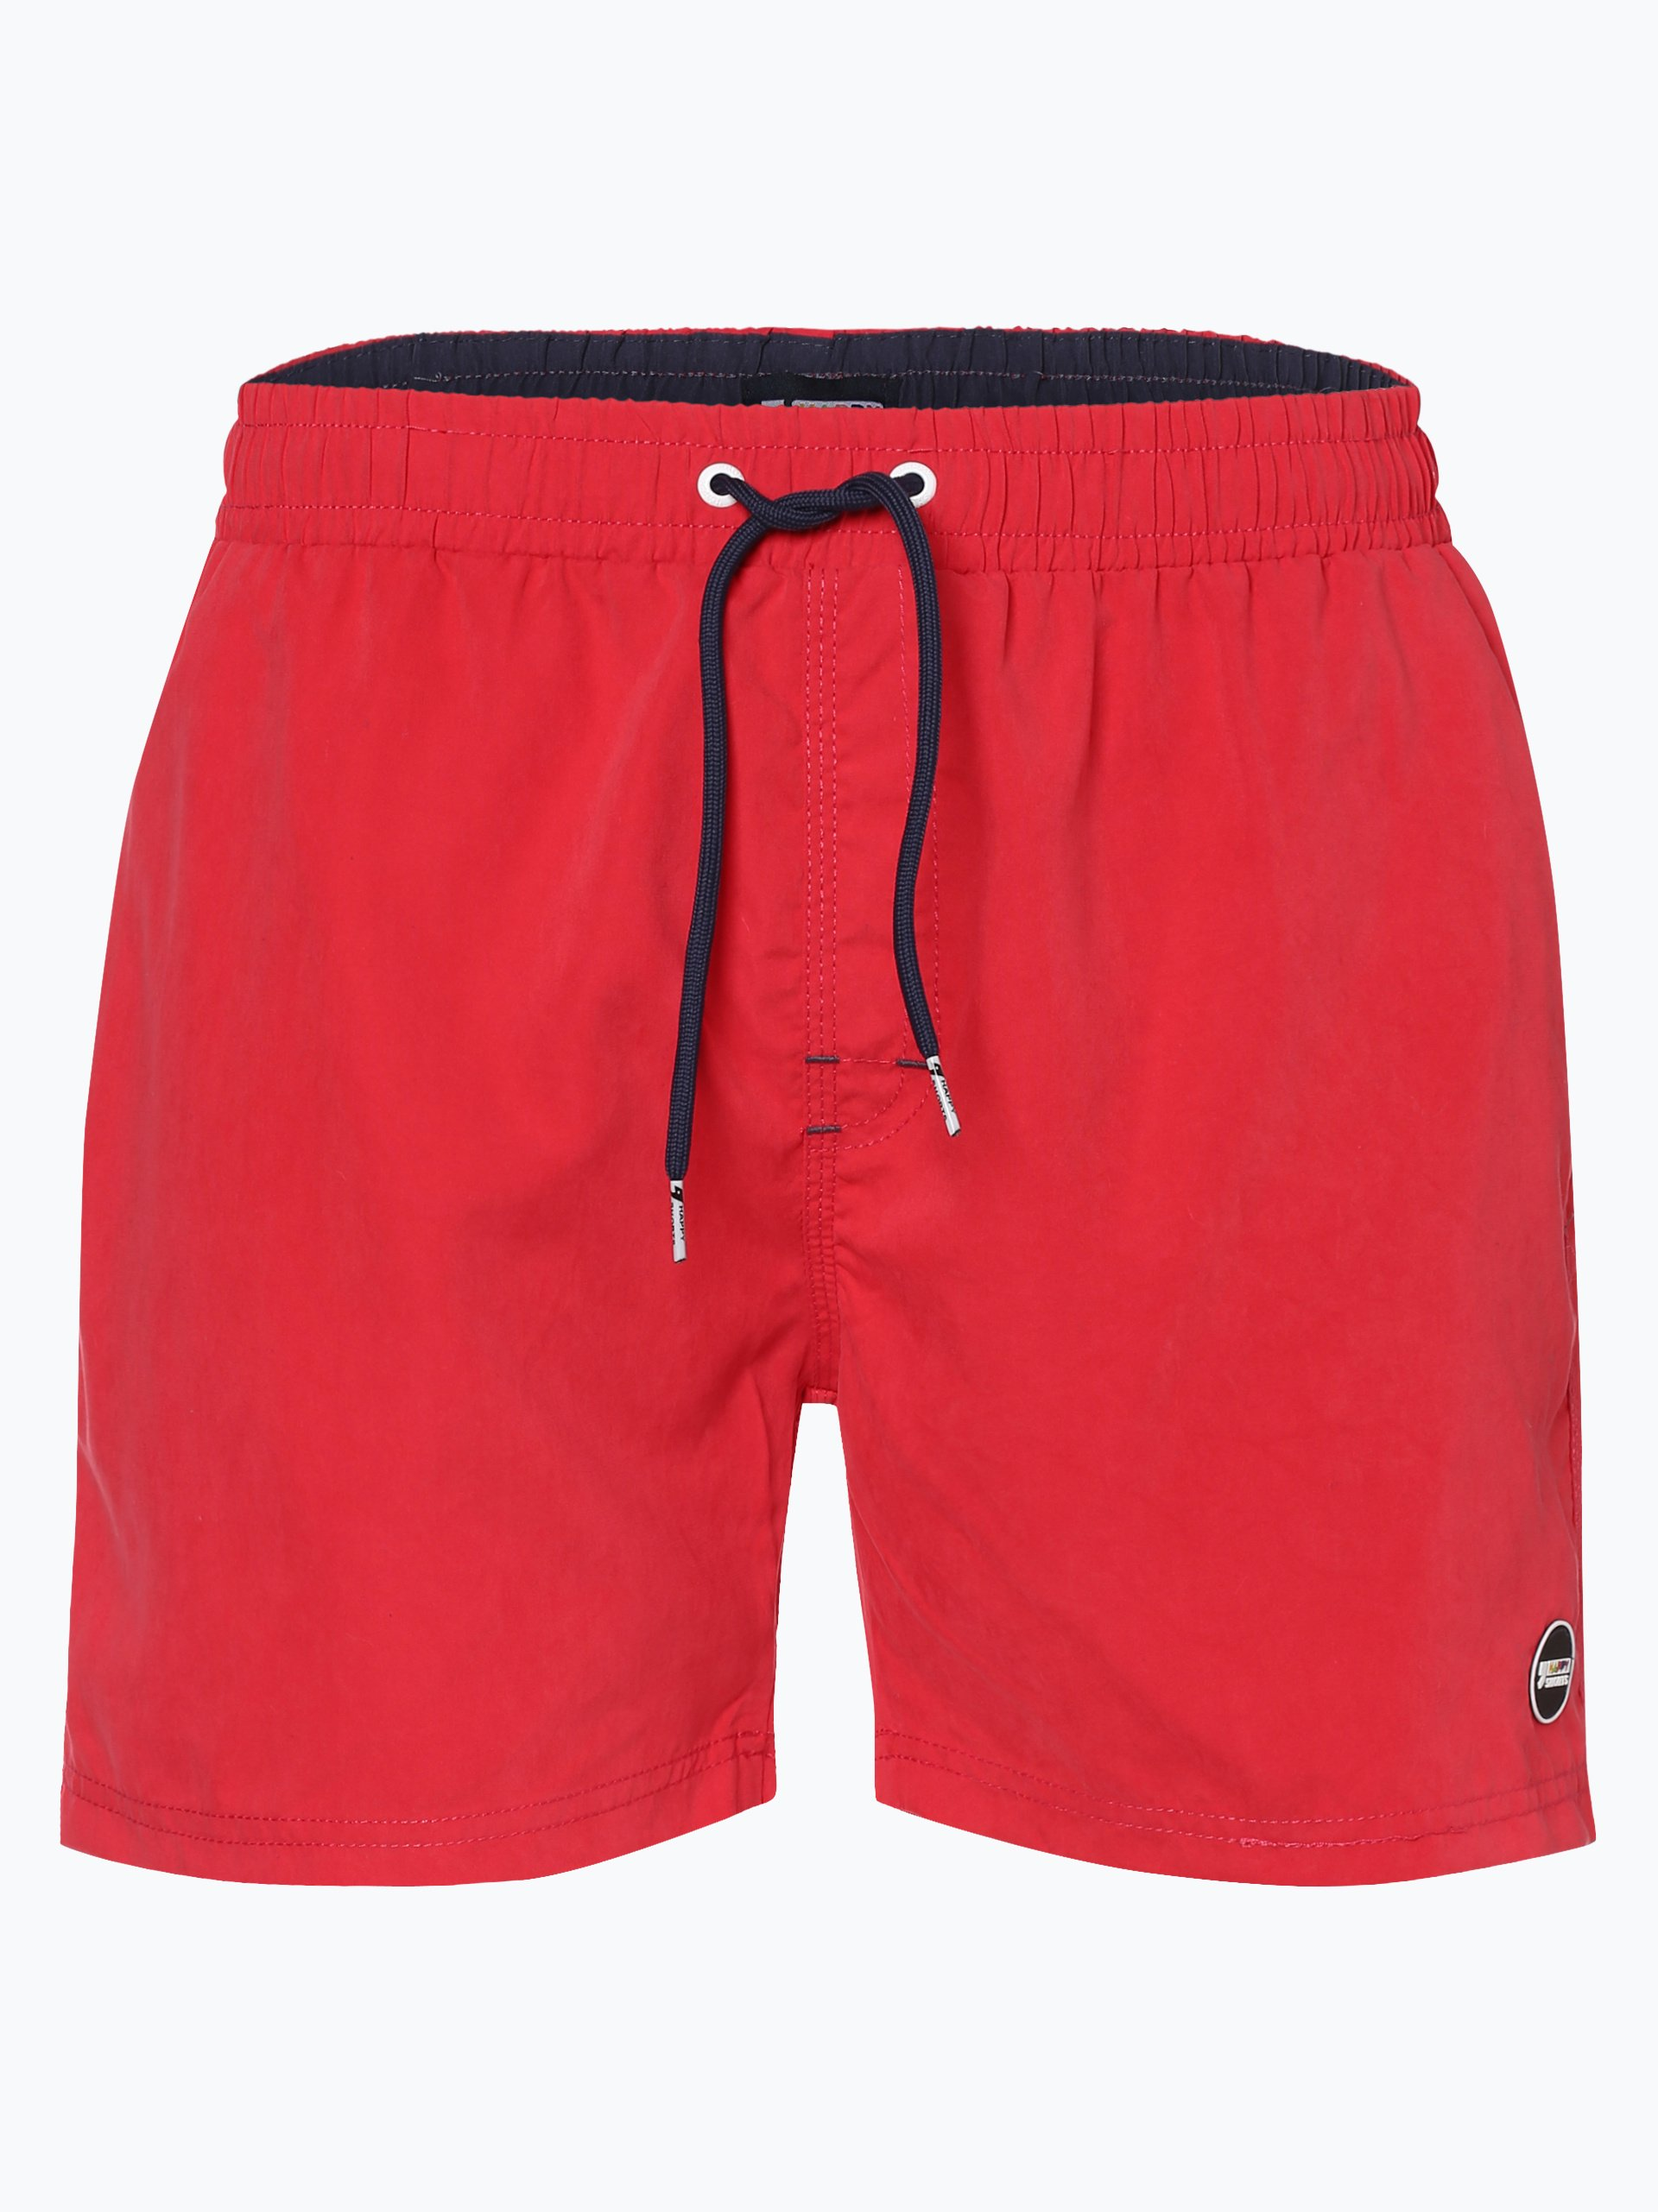 HAPPY SHORTS Herren Badeshorts